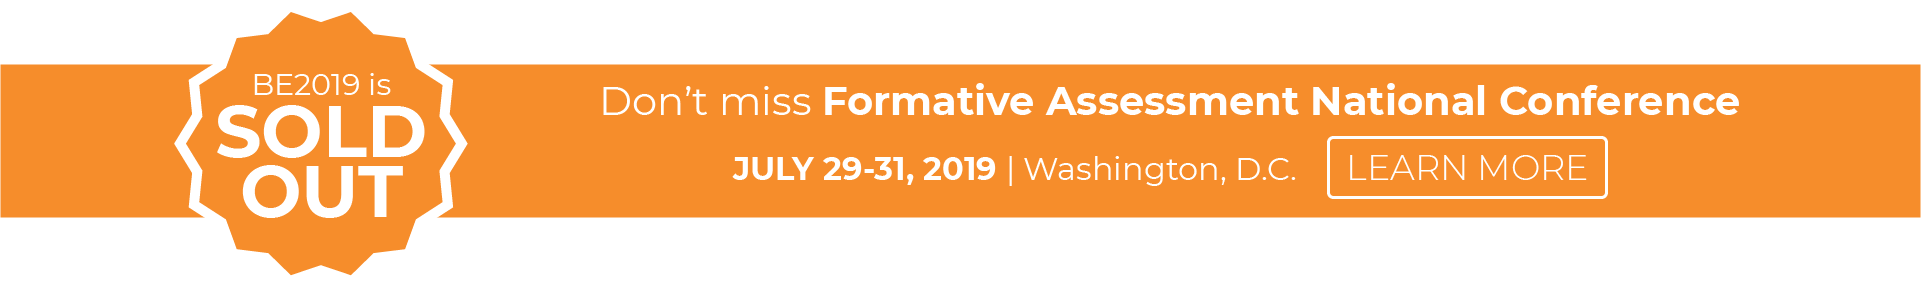 BE2019 is sold out! Don't miss Formative Assessment National Conference - JULY 29-31, 2019 | Washington, D.C. - Click Here